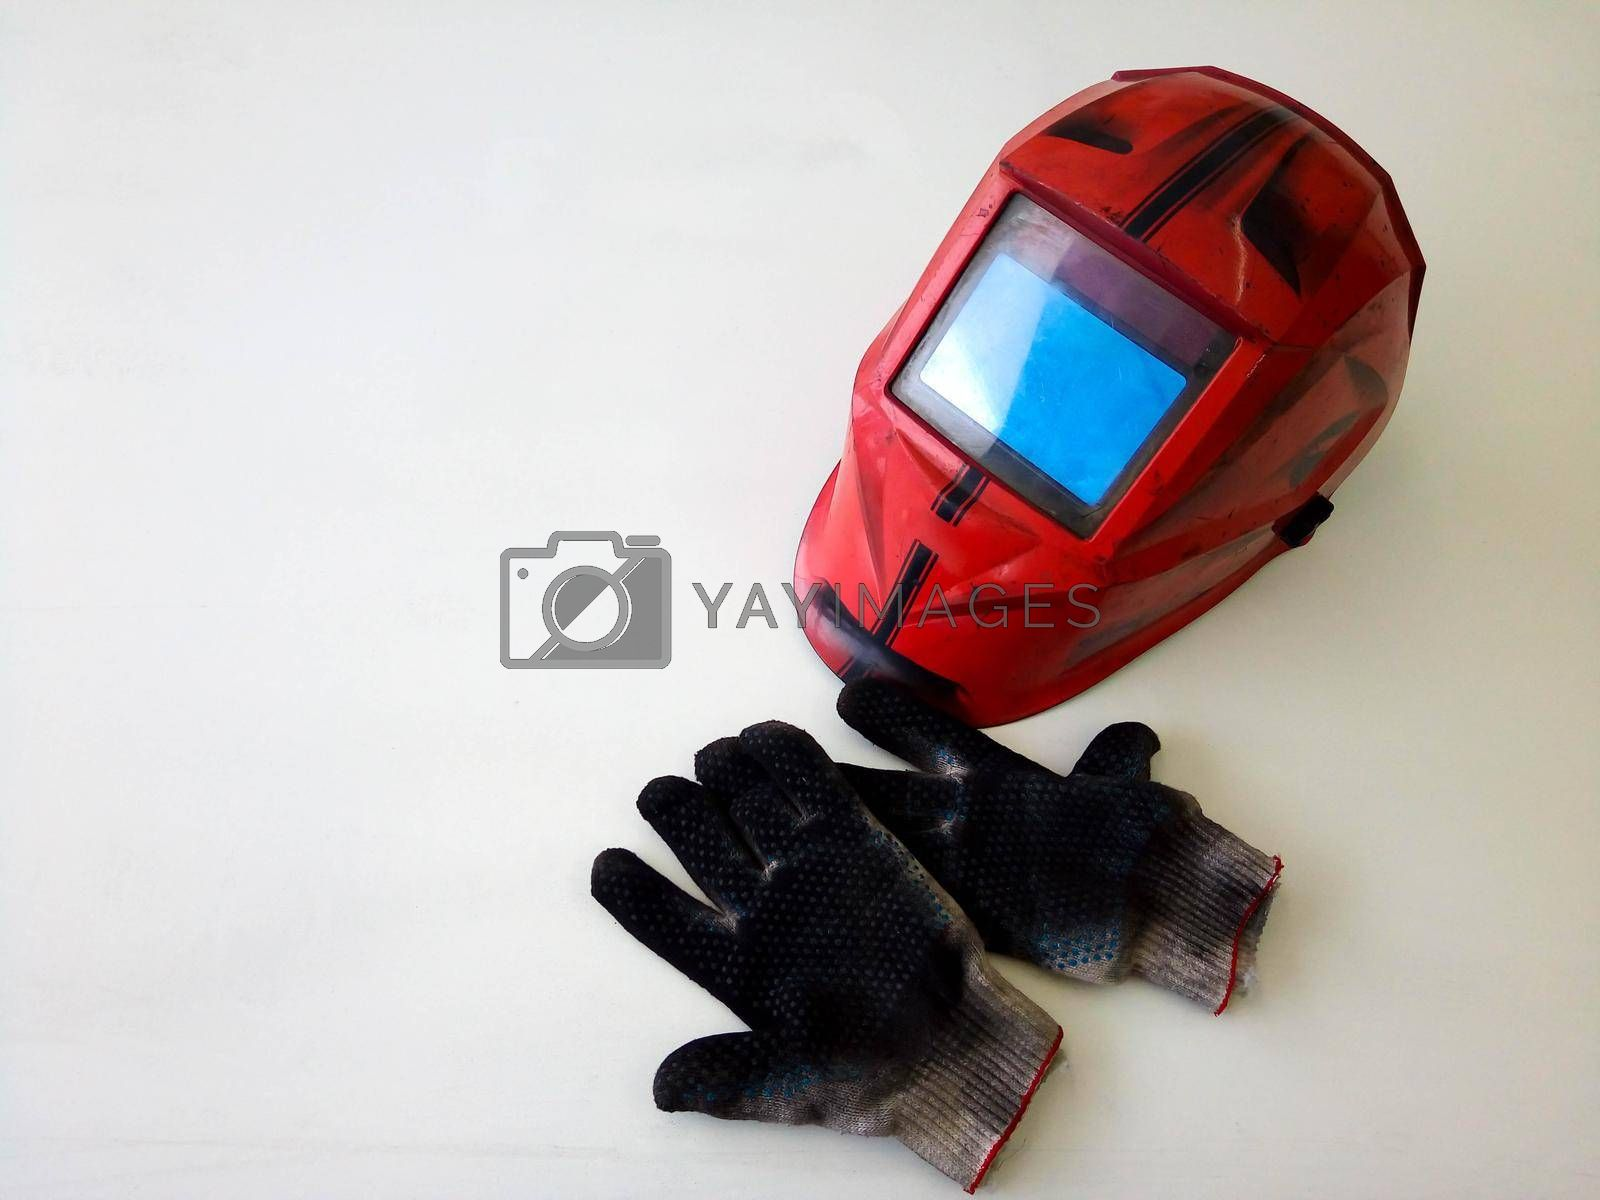 Photos of dirty welding gloves, welder's mask in the workshop